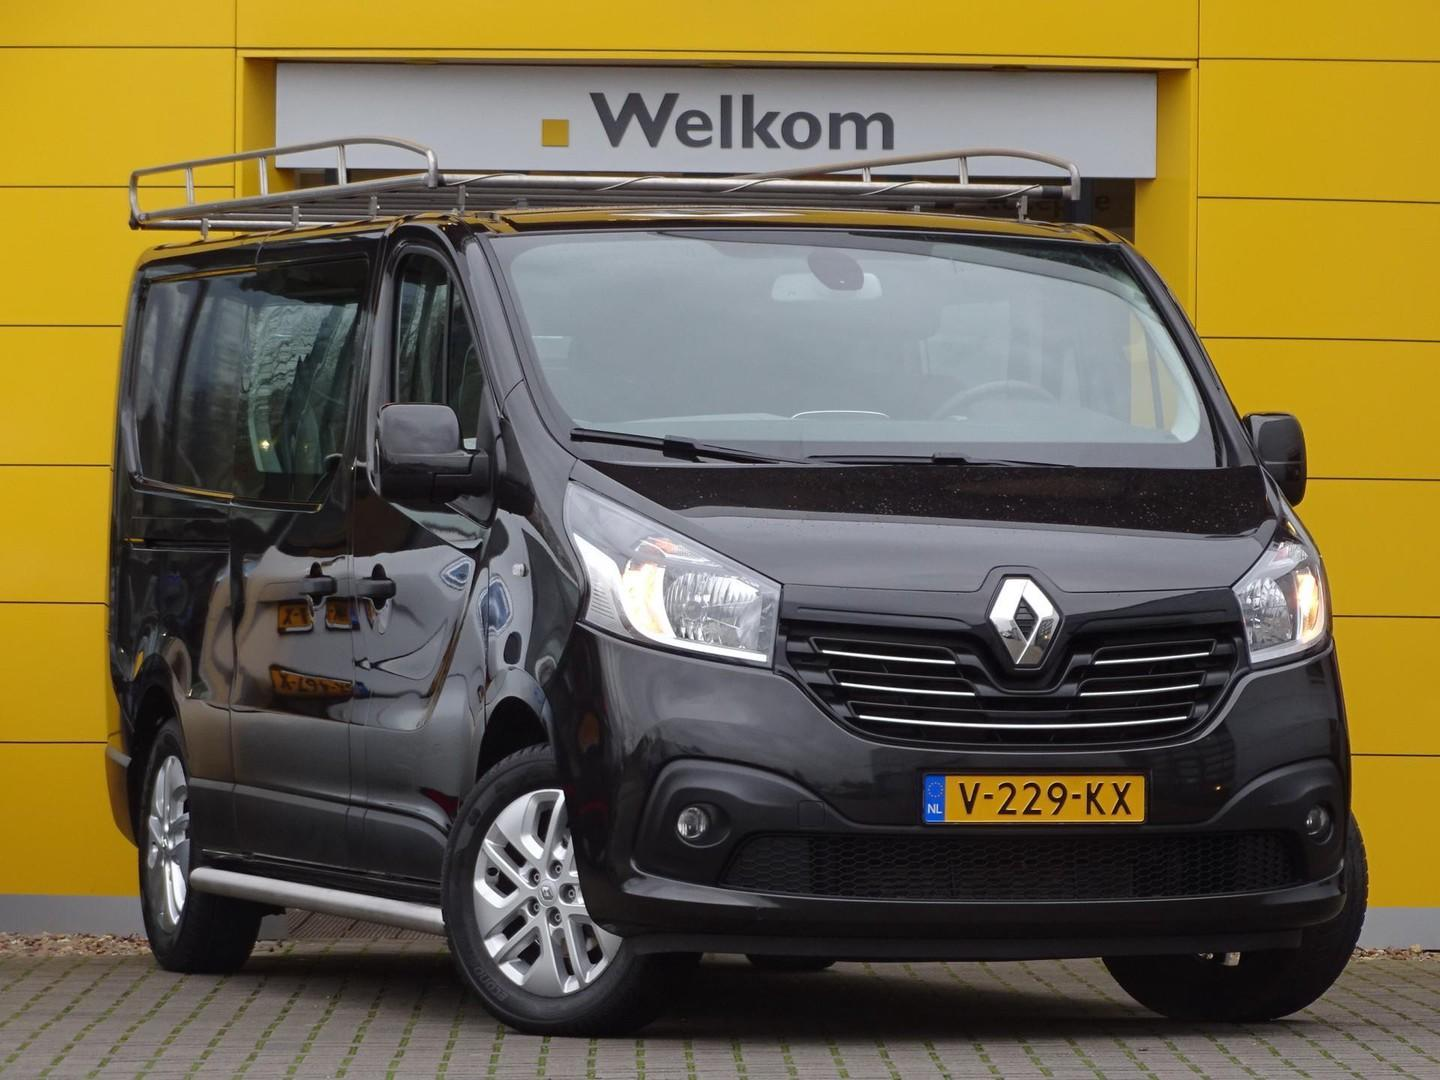 Renault Trafic 1.6 dci t29 125pk l2h1 dc luxe energy